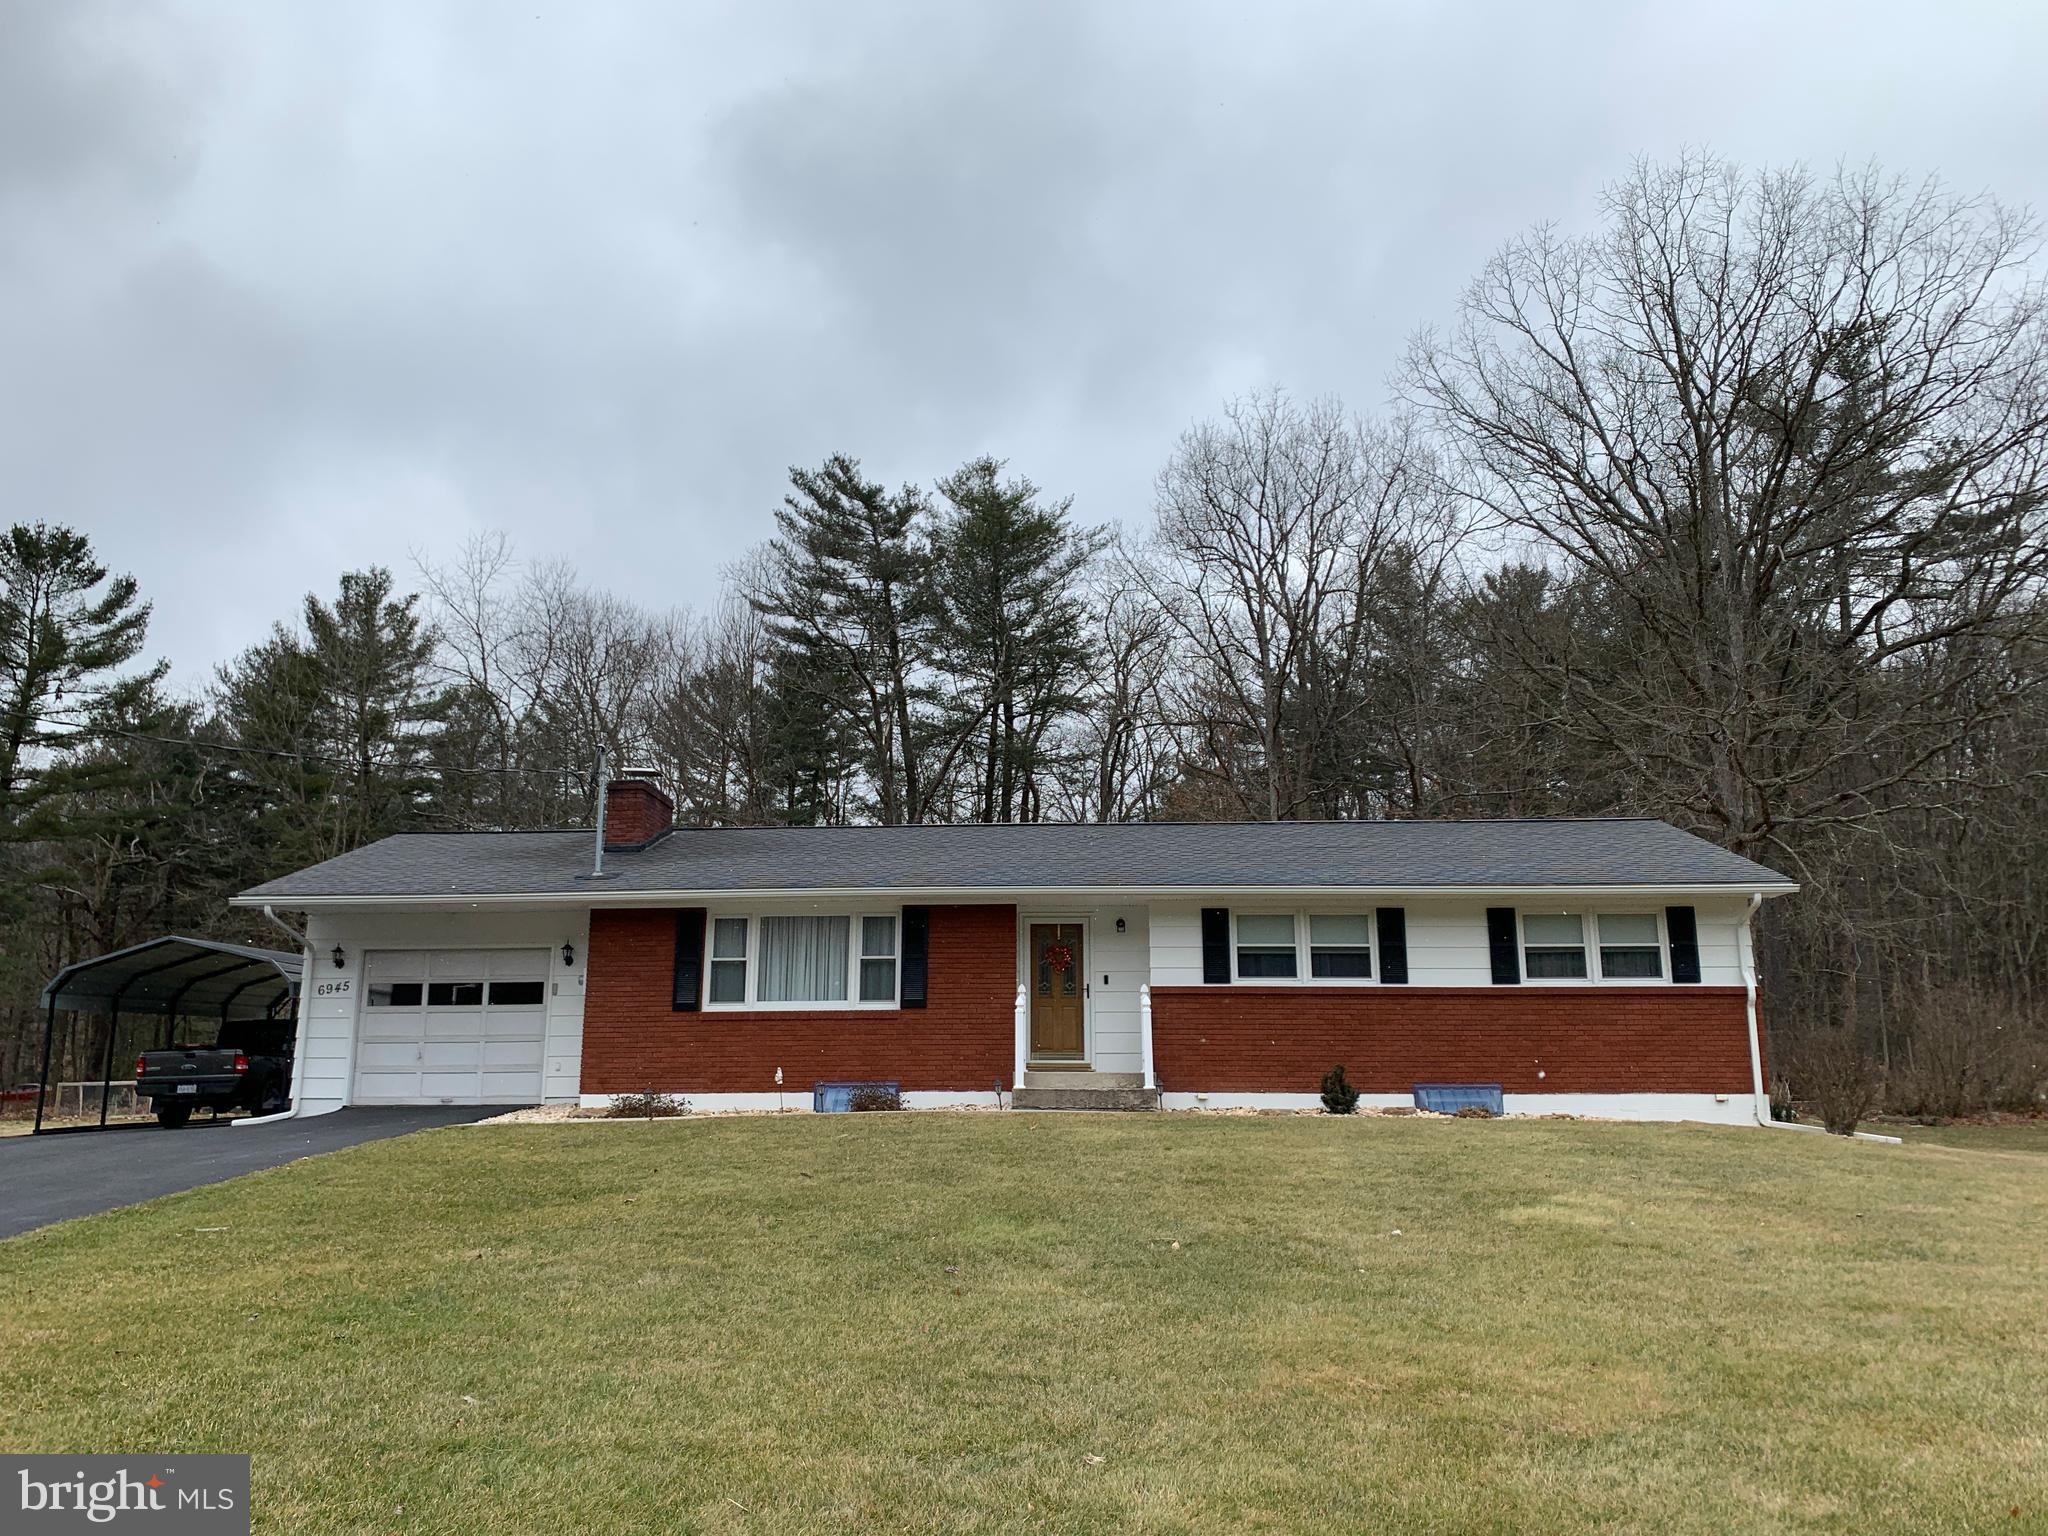 6945 BEDFORD VALLEY RD, BEDFORD, PA 15522